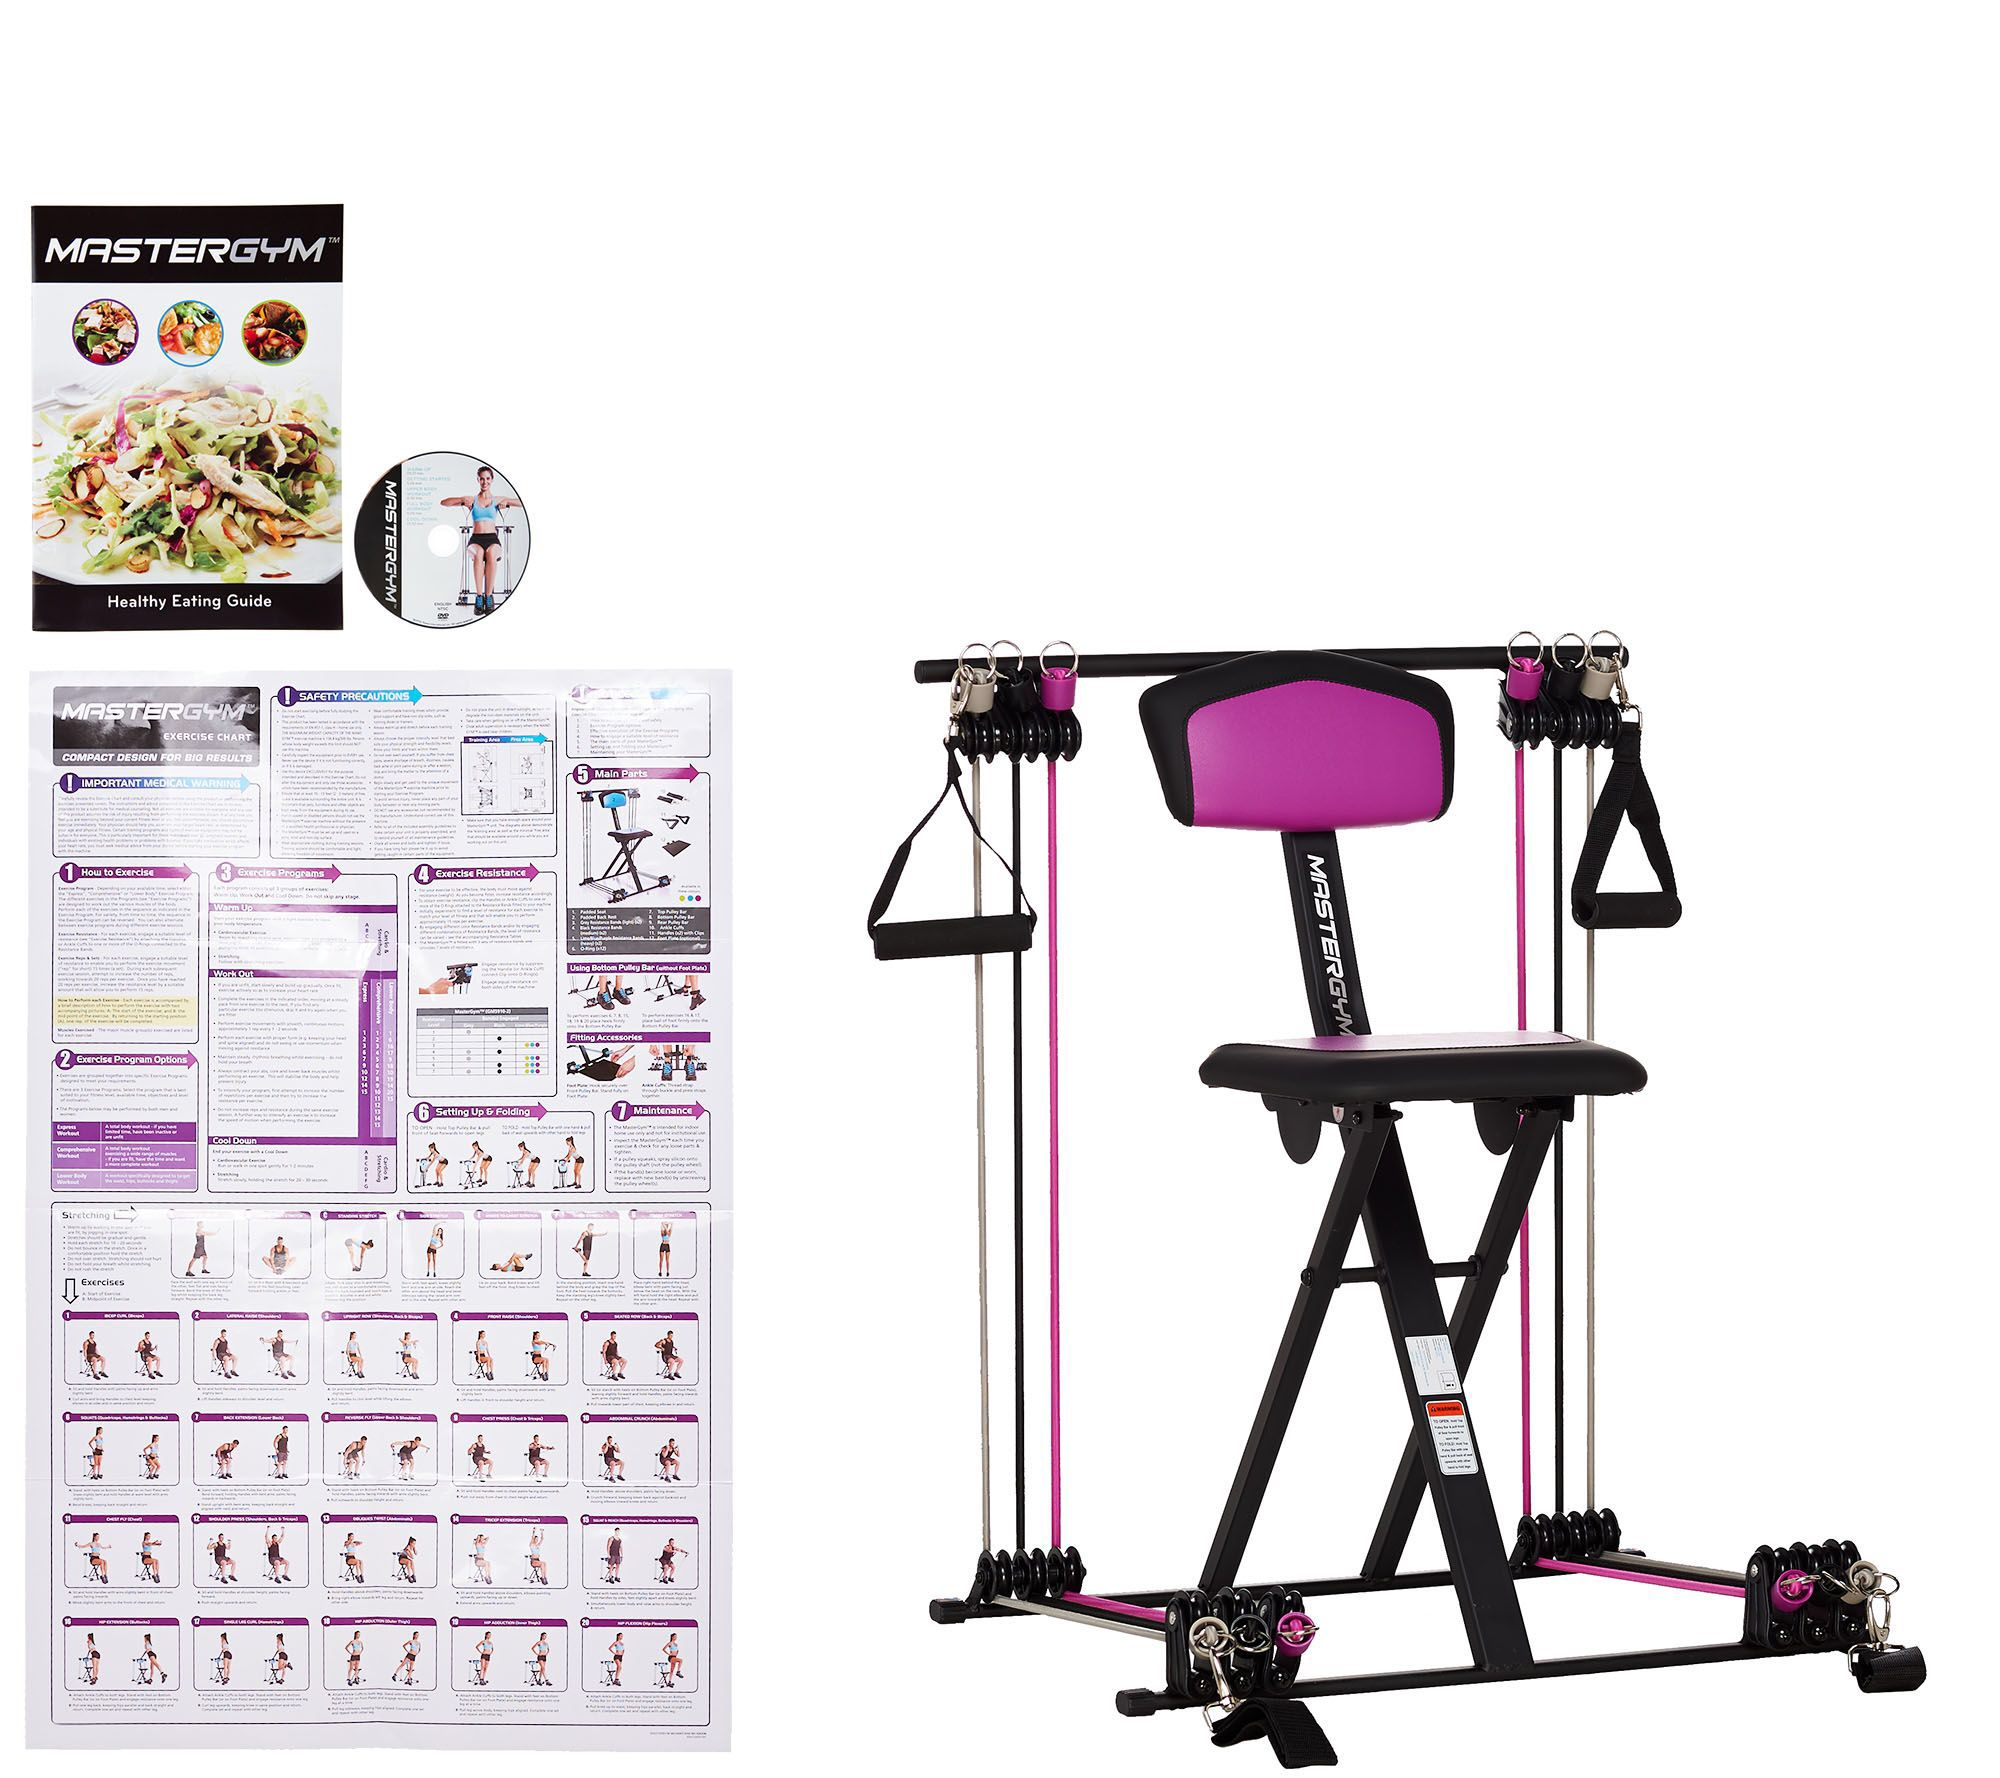 Chair Gym Accessories Homemade Bean Bag Patterns Master Compact Fitness With Dvd And Wall Chart